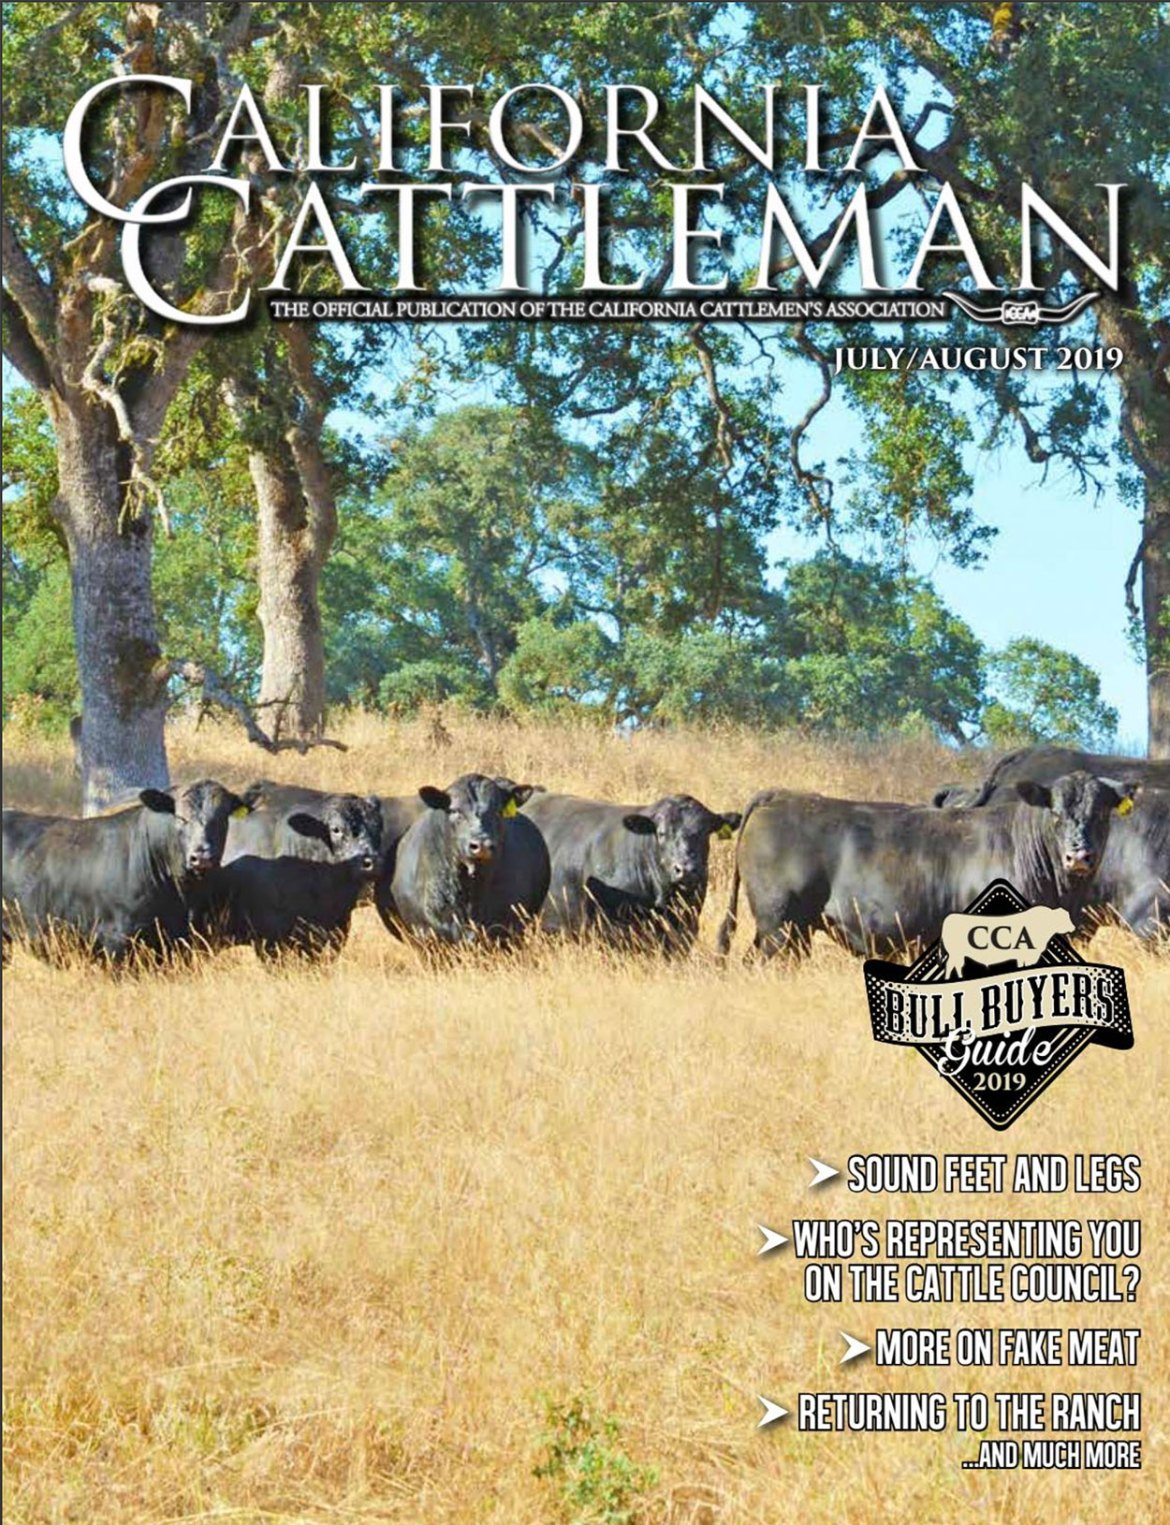 Bulls on the cover of the July/August 2019 issue of the California Cattleman